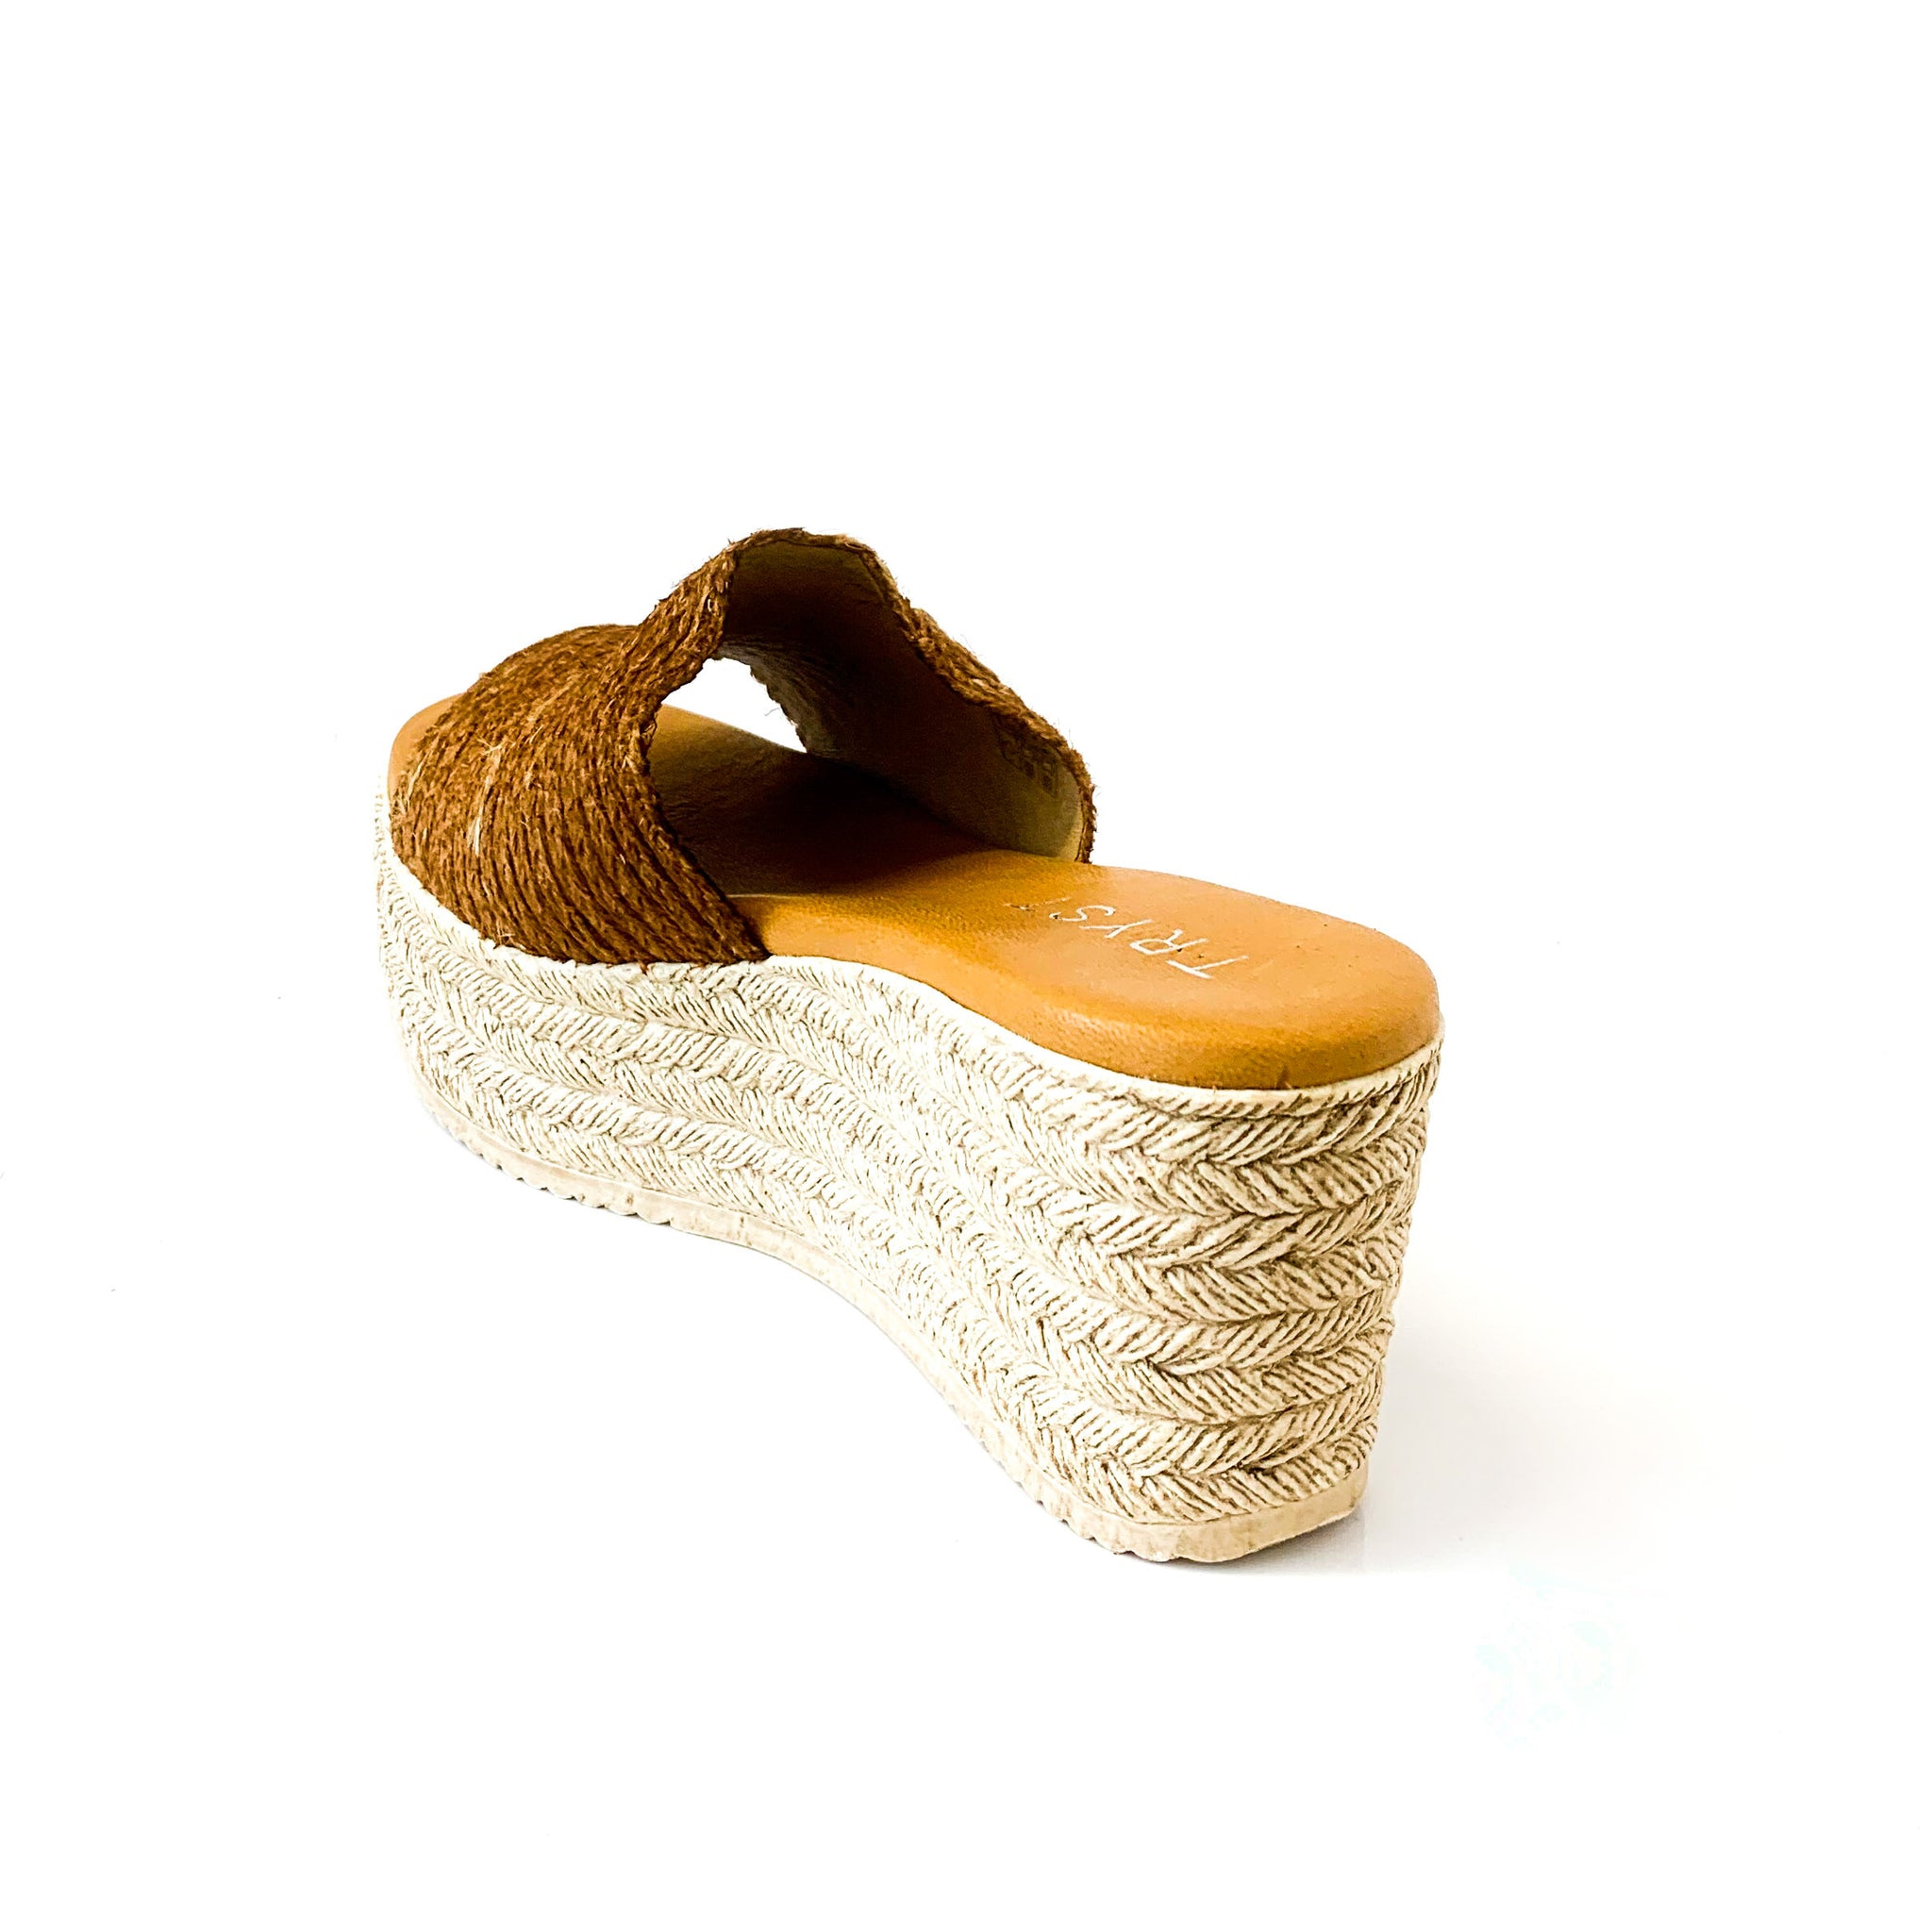 CLARA | Platform Sandals with Thick Brown Strap - TrystShoes